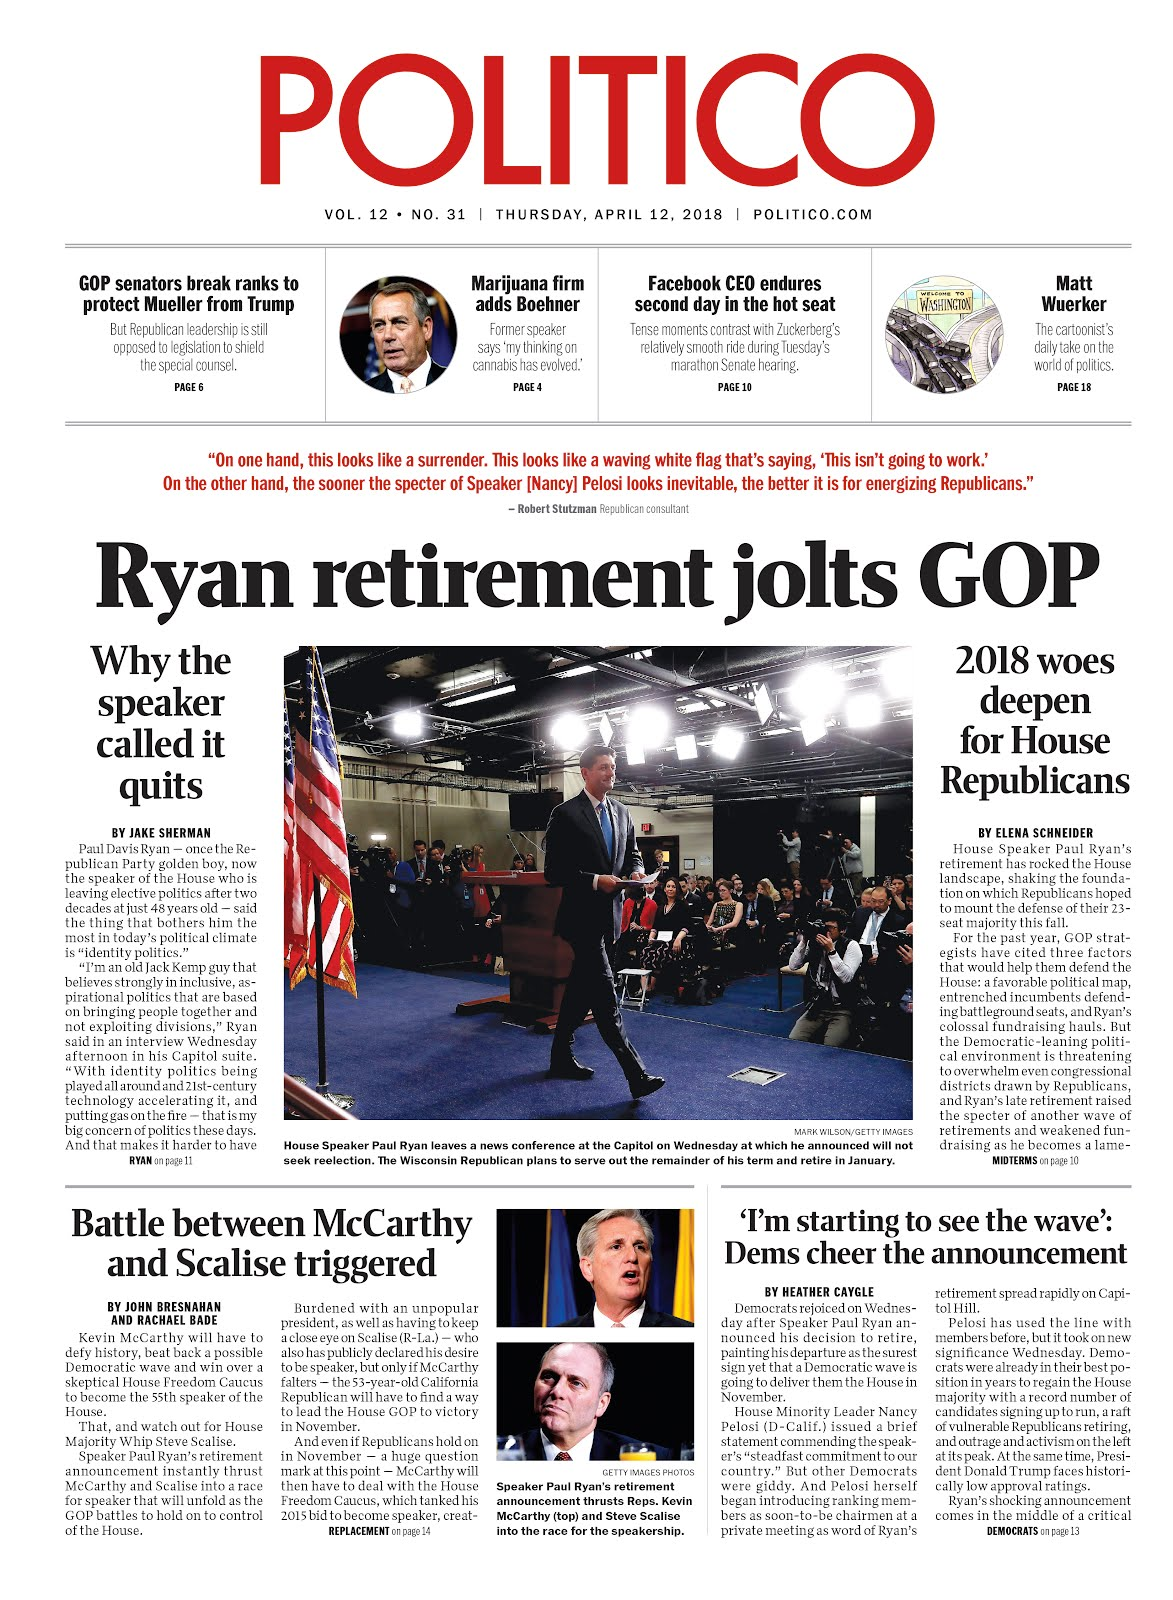 Ryan retirement jolts GOP